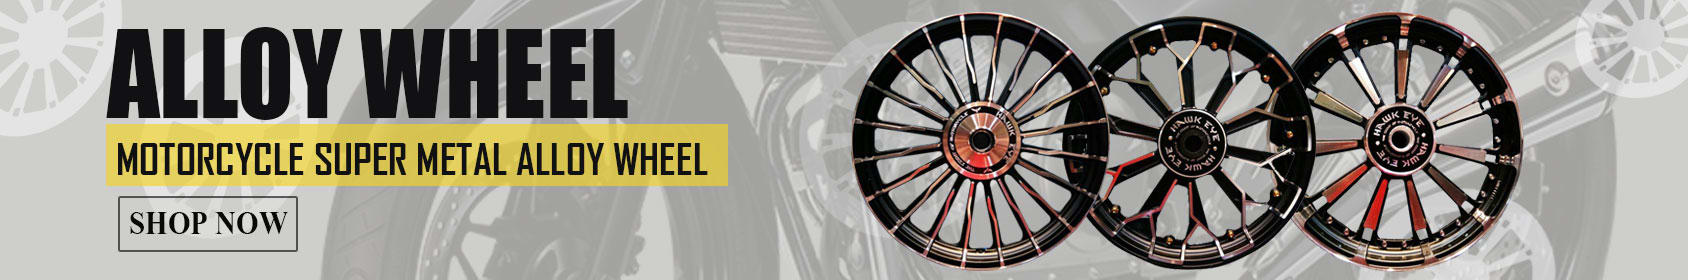 Special offers on Genuine Motorcycle Spare Parts And Accessories - motorcycle alloy wheel